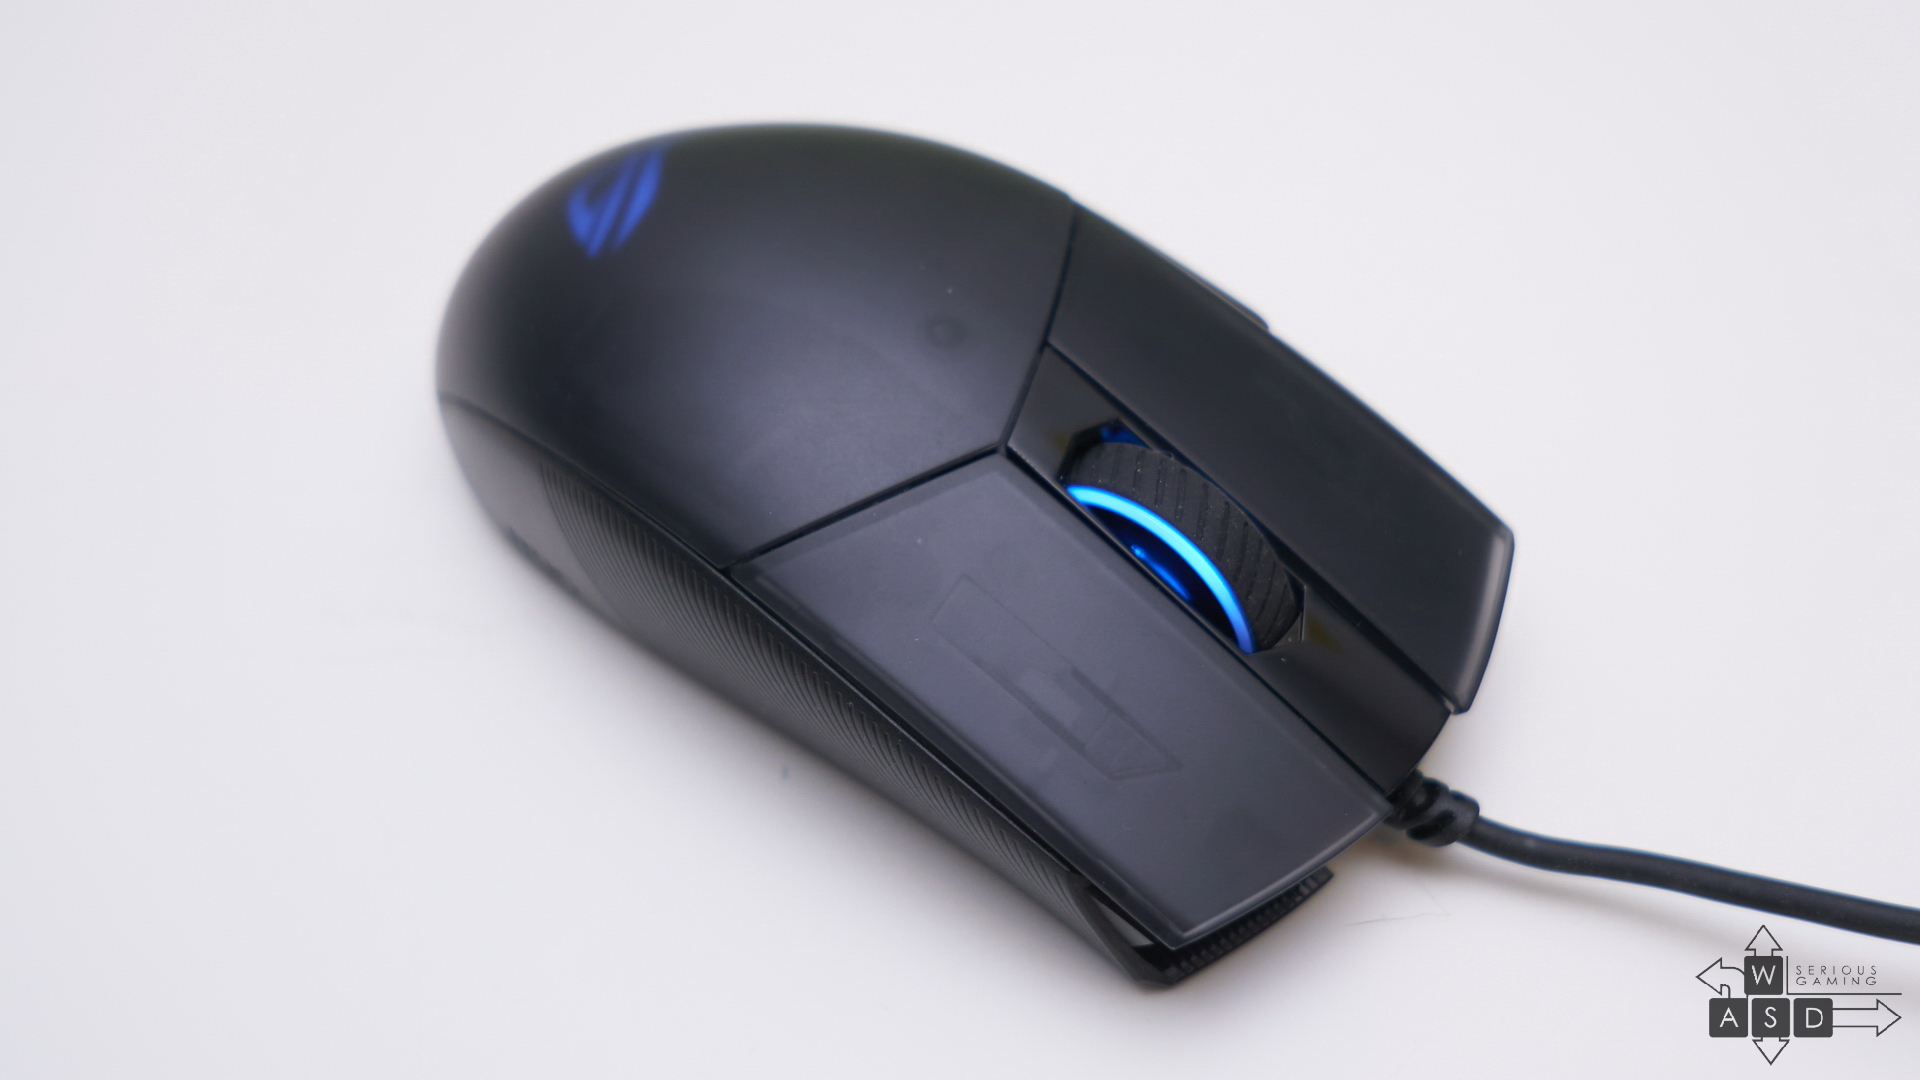 Asus ROG Strix Impact II review | WASD